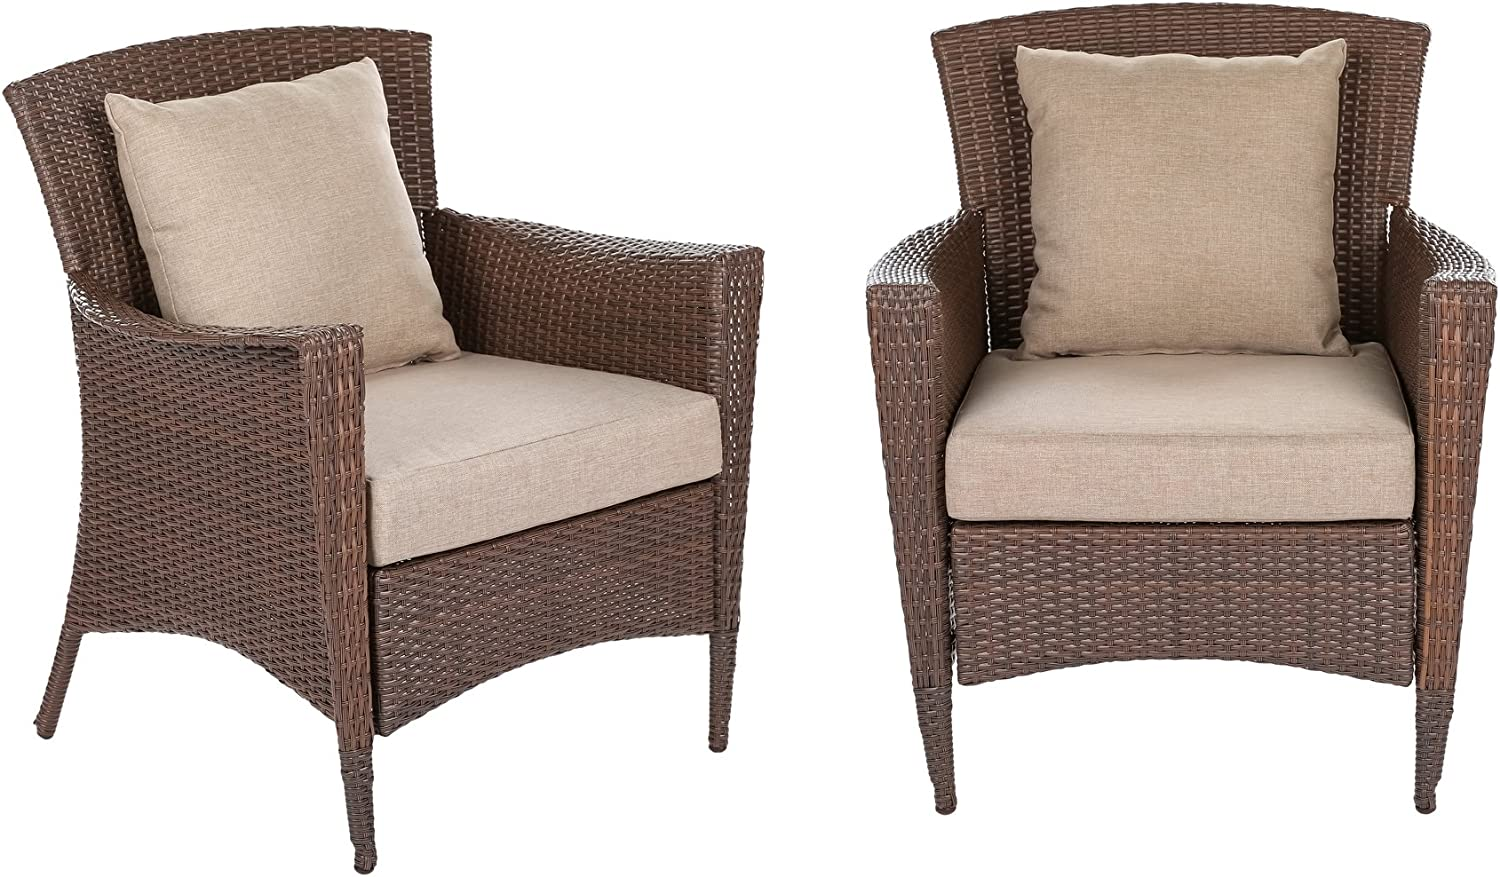 WUnlimited 2xSW1305-AC Galleon Collection Outdoor 2 Bistro Chair Set Patio Furnitur